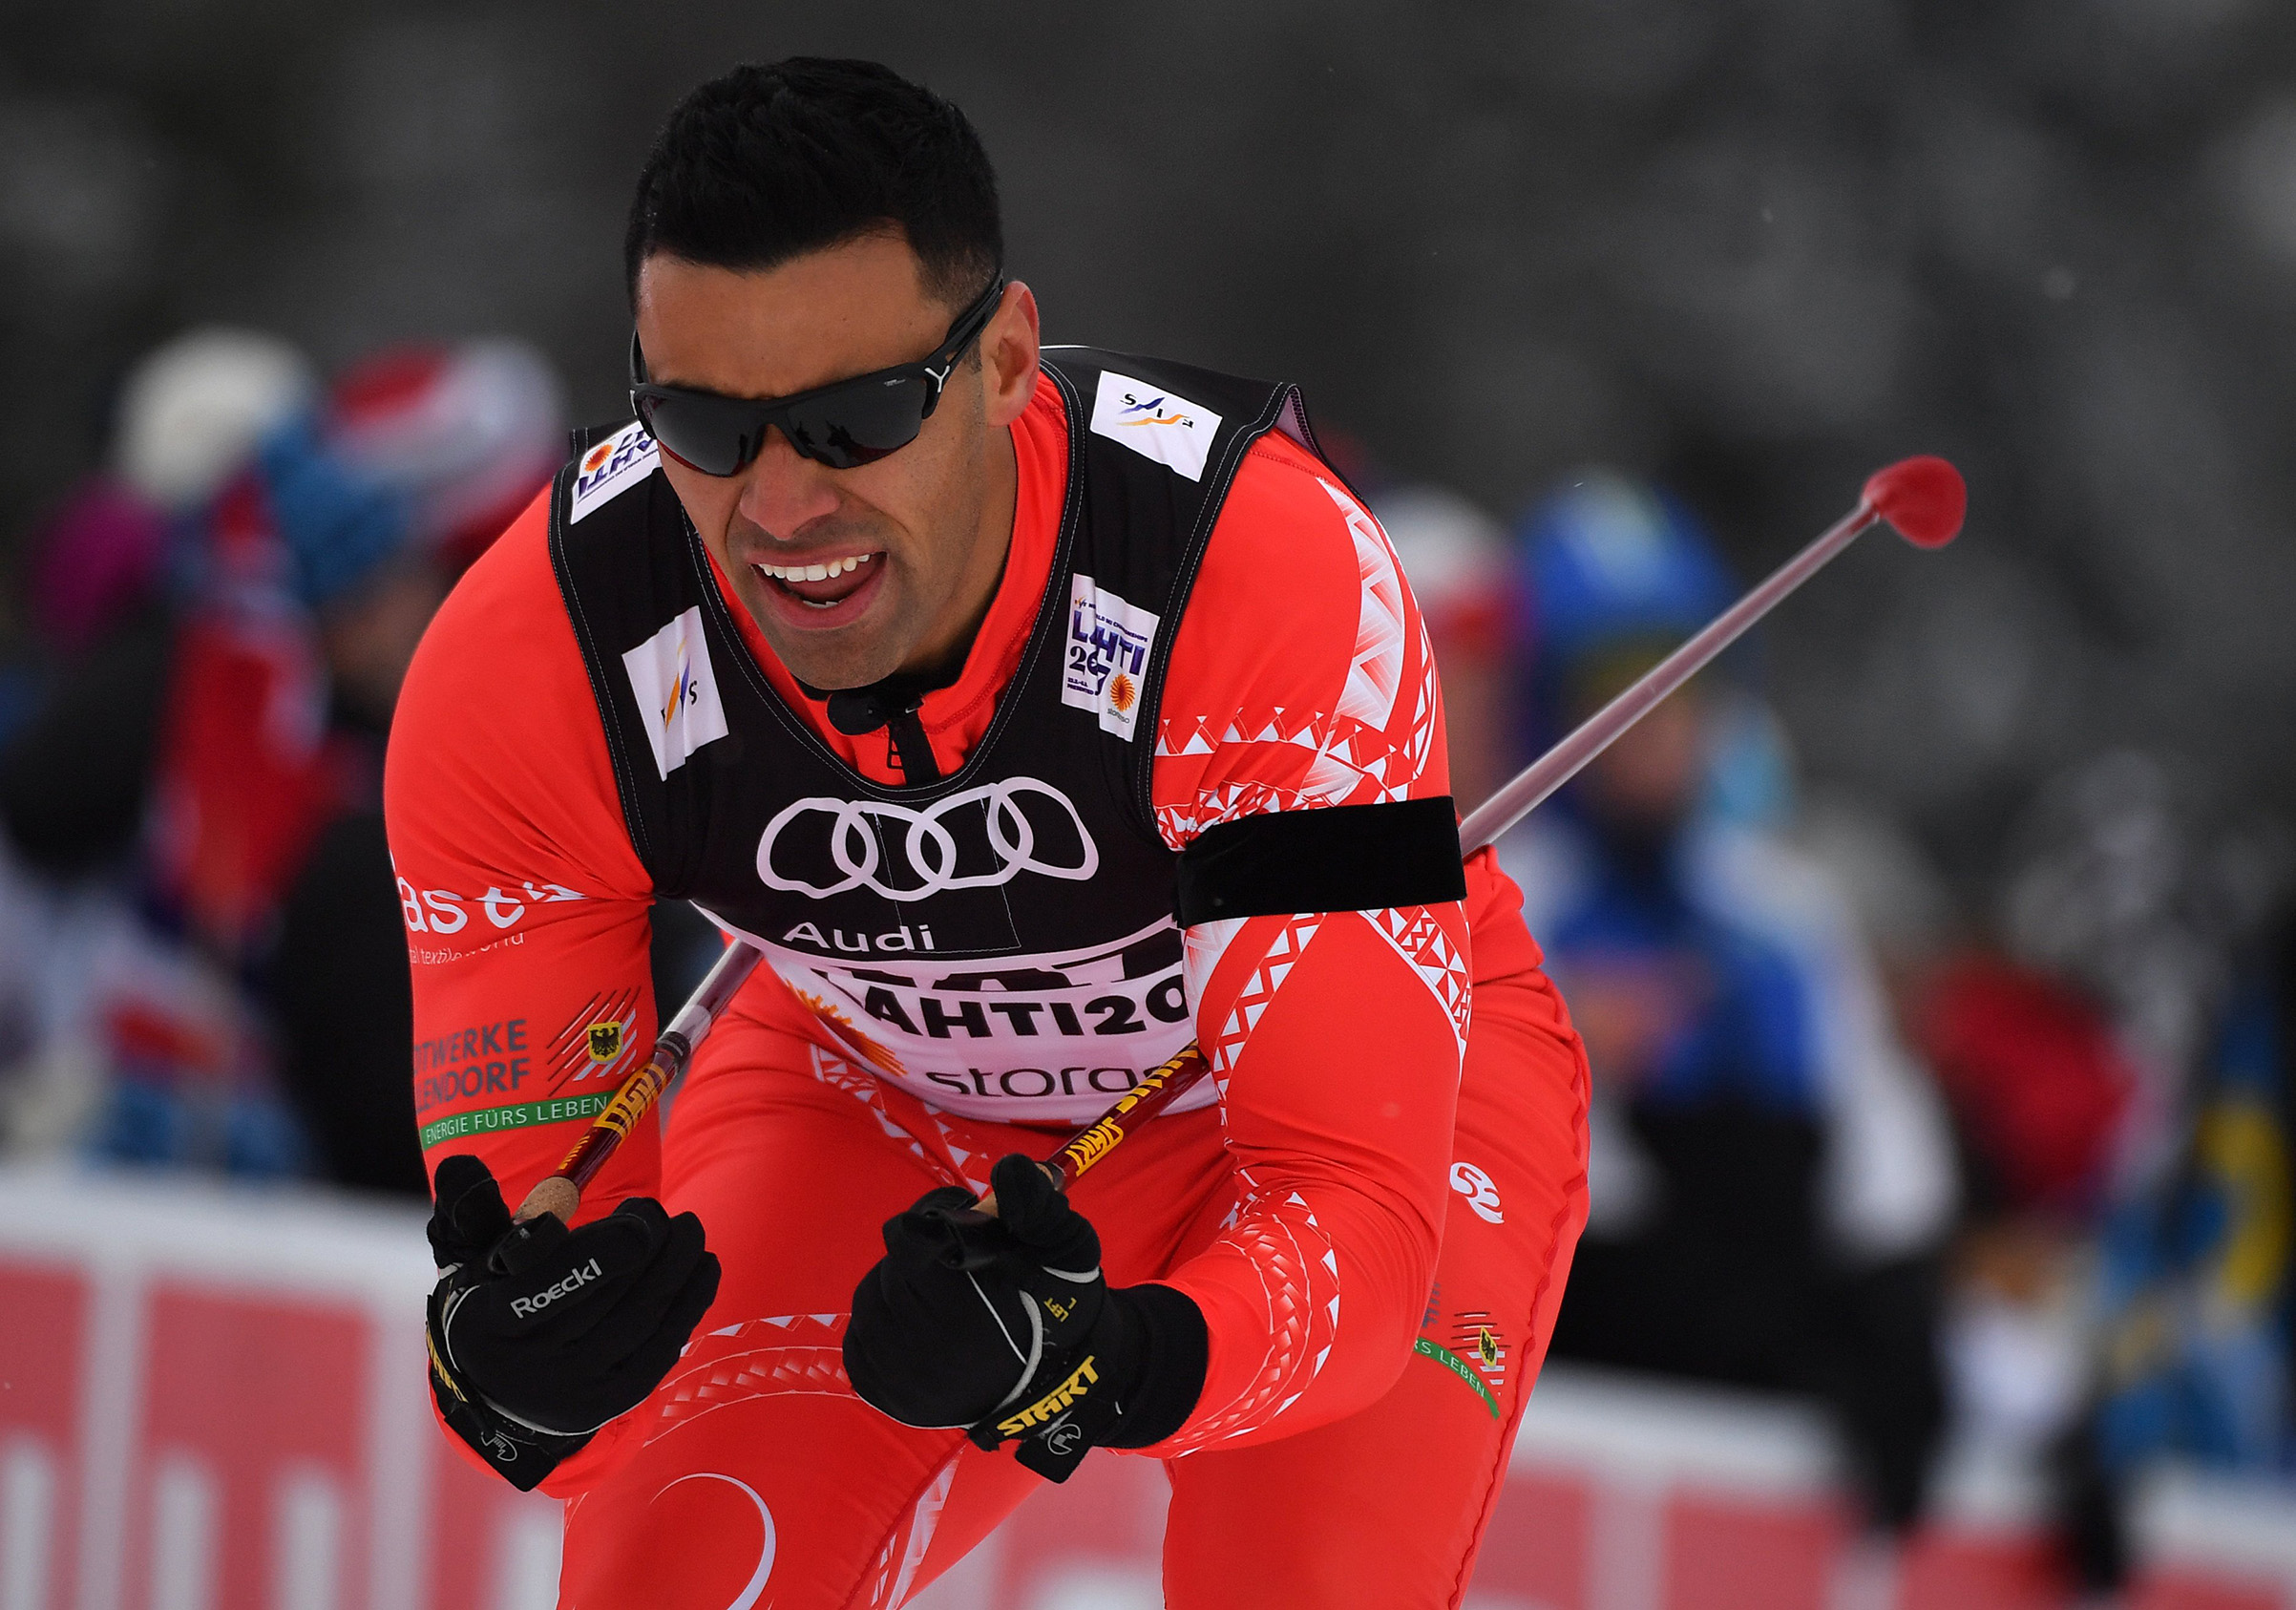 Tonga's Pita Taufatofua competes in the men's cross country sprint qualification at the 2017 Nordic Skiing World Championships in Lahti, Finland. Hendrik Schmidt—Picture Alliance/dpa/AP